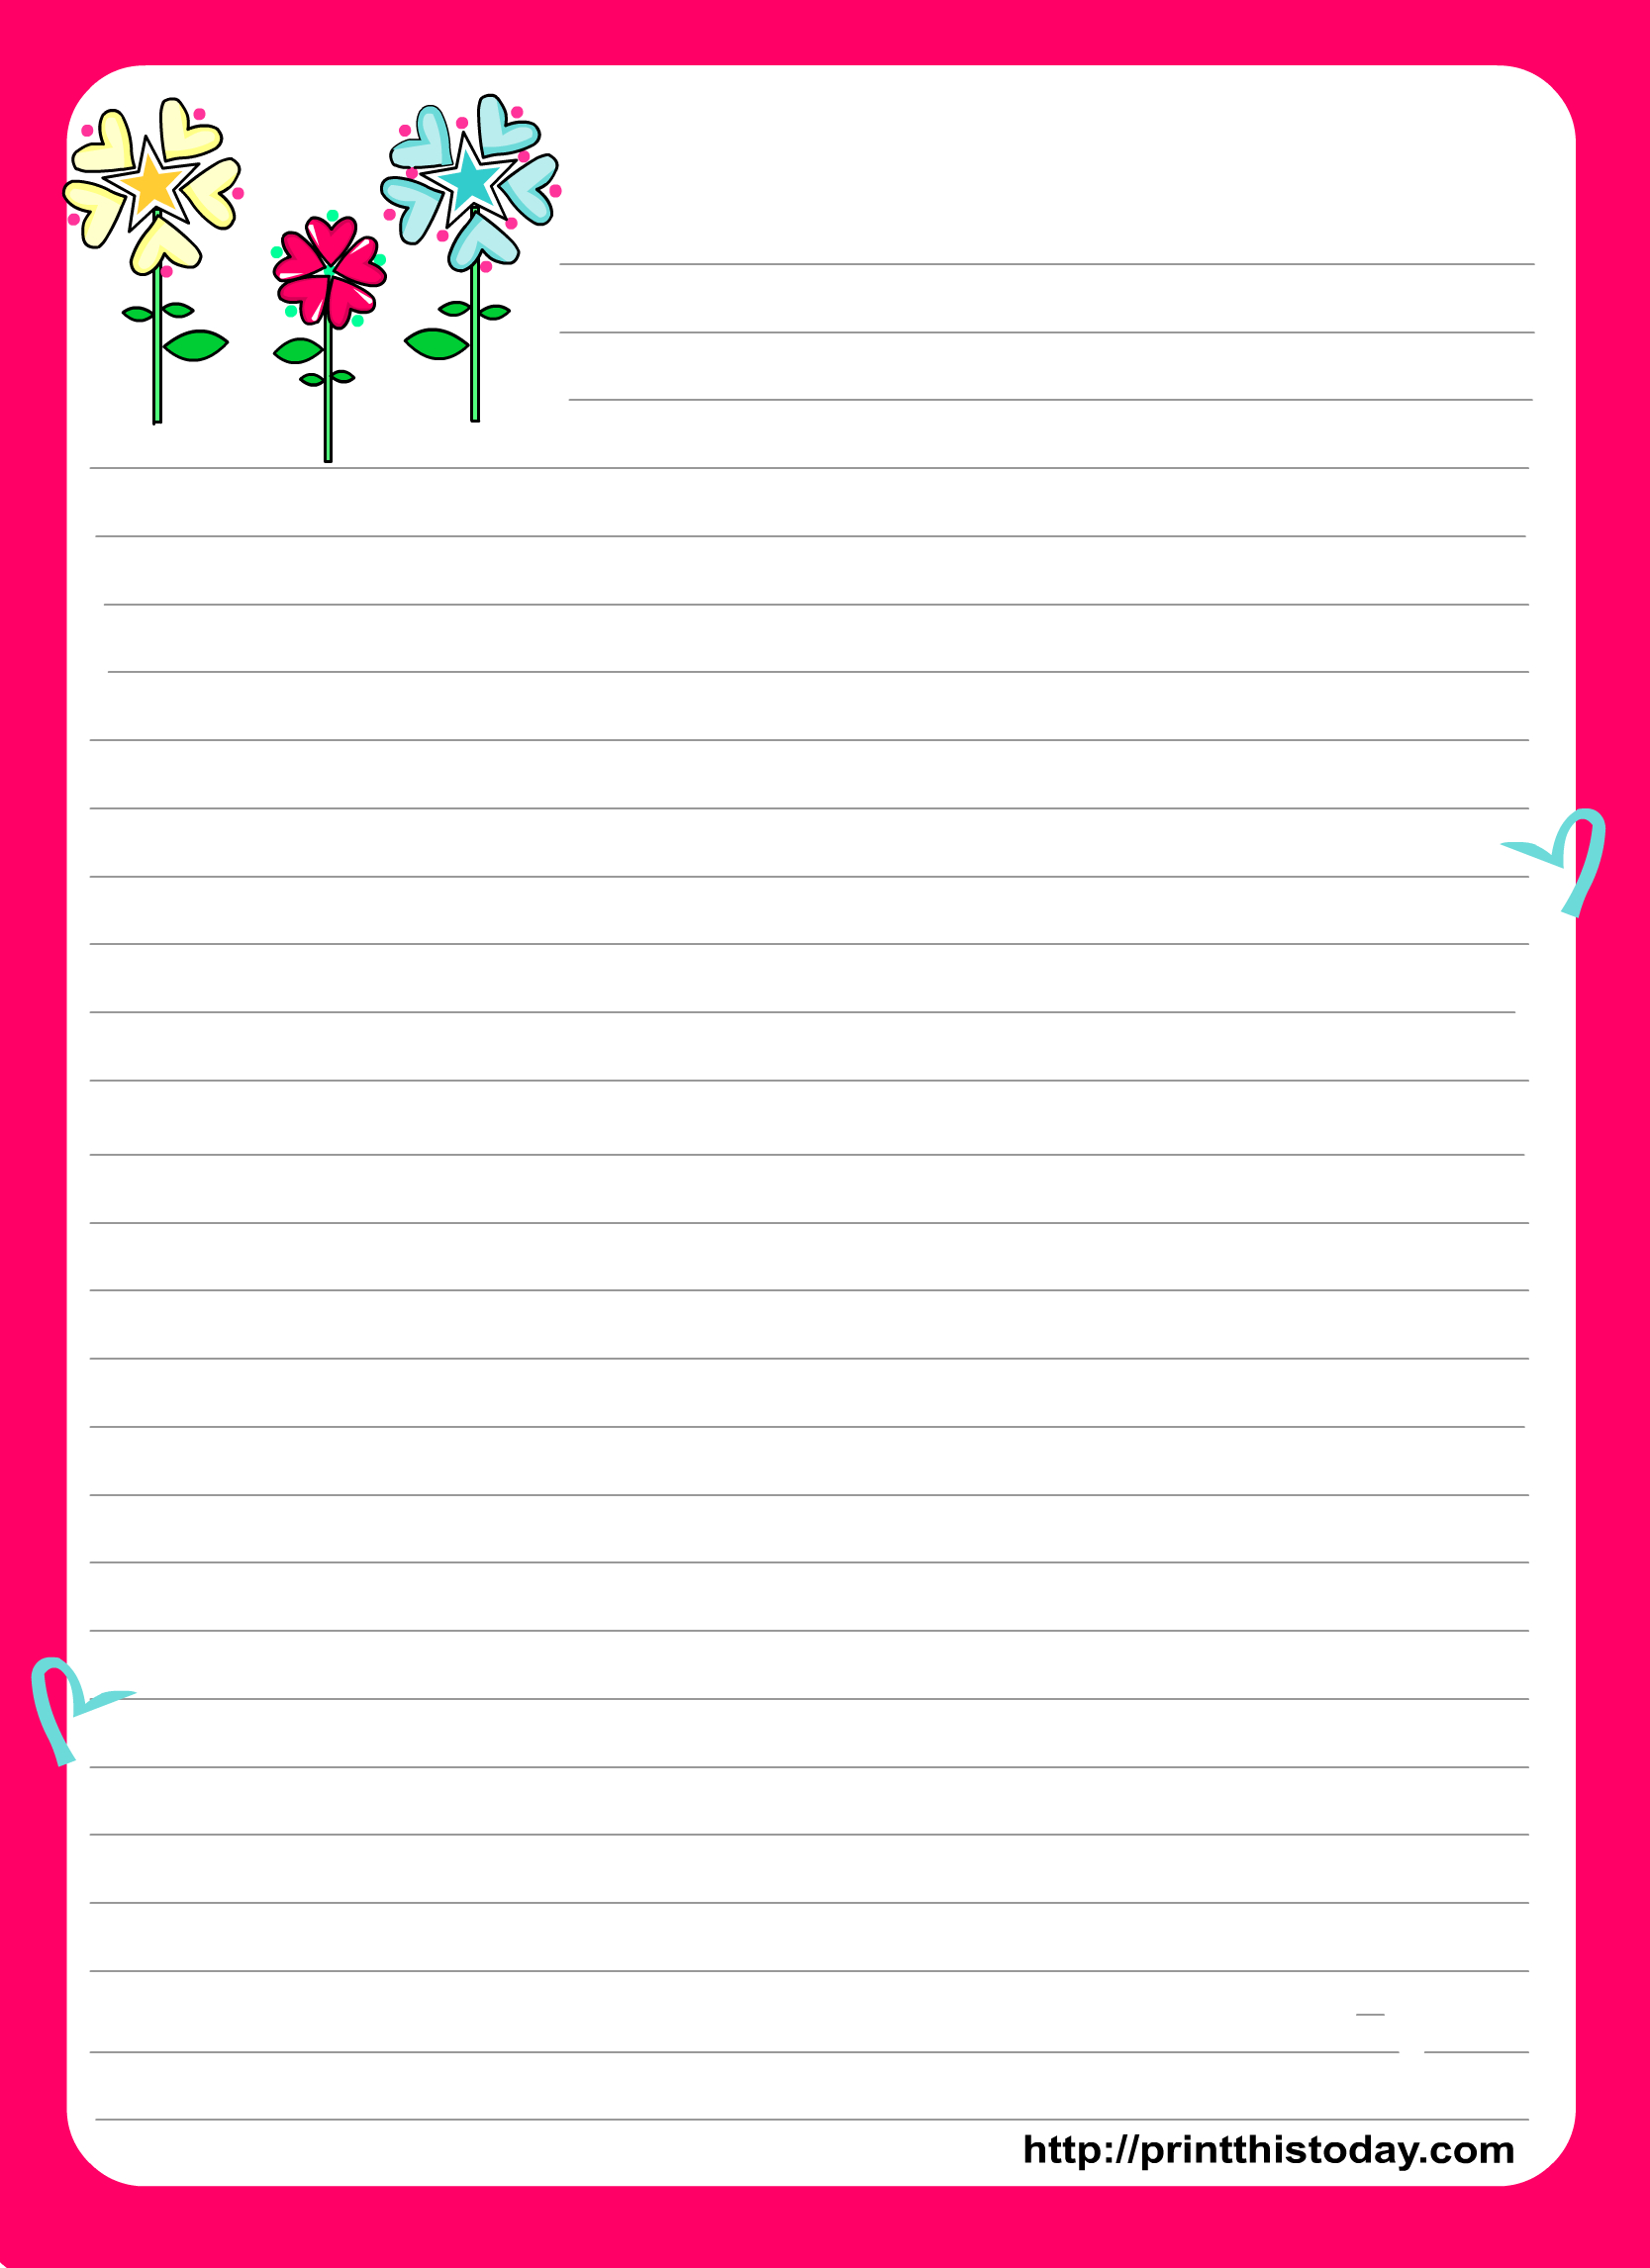 Love Letter Pad Stationery - Free Printable Love Letter Paper